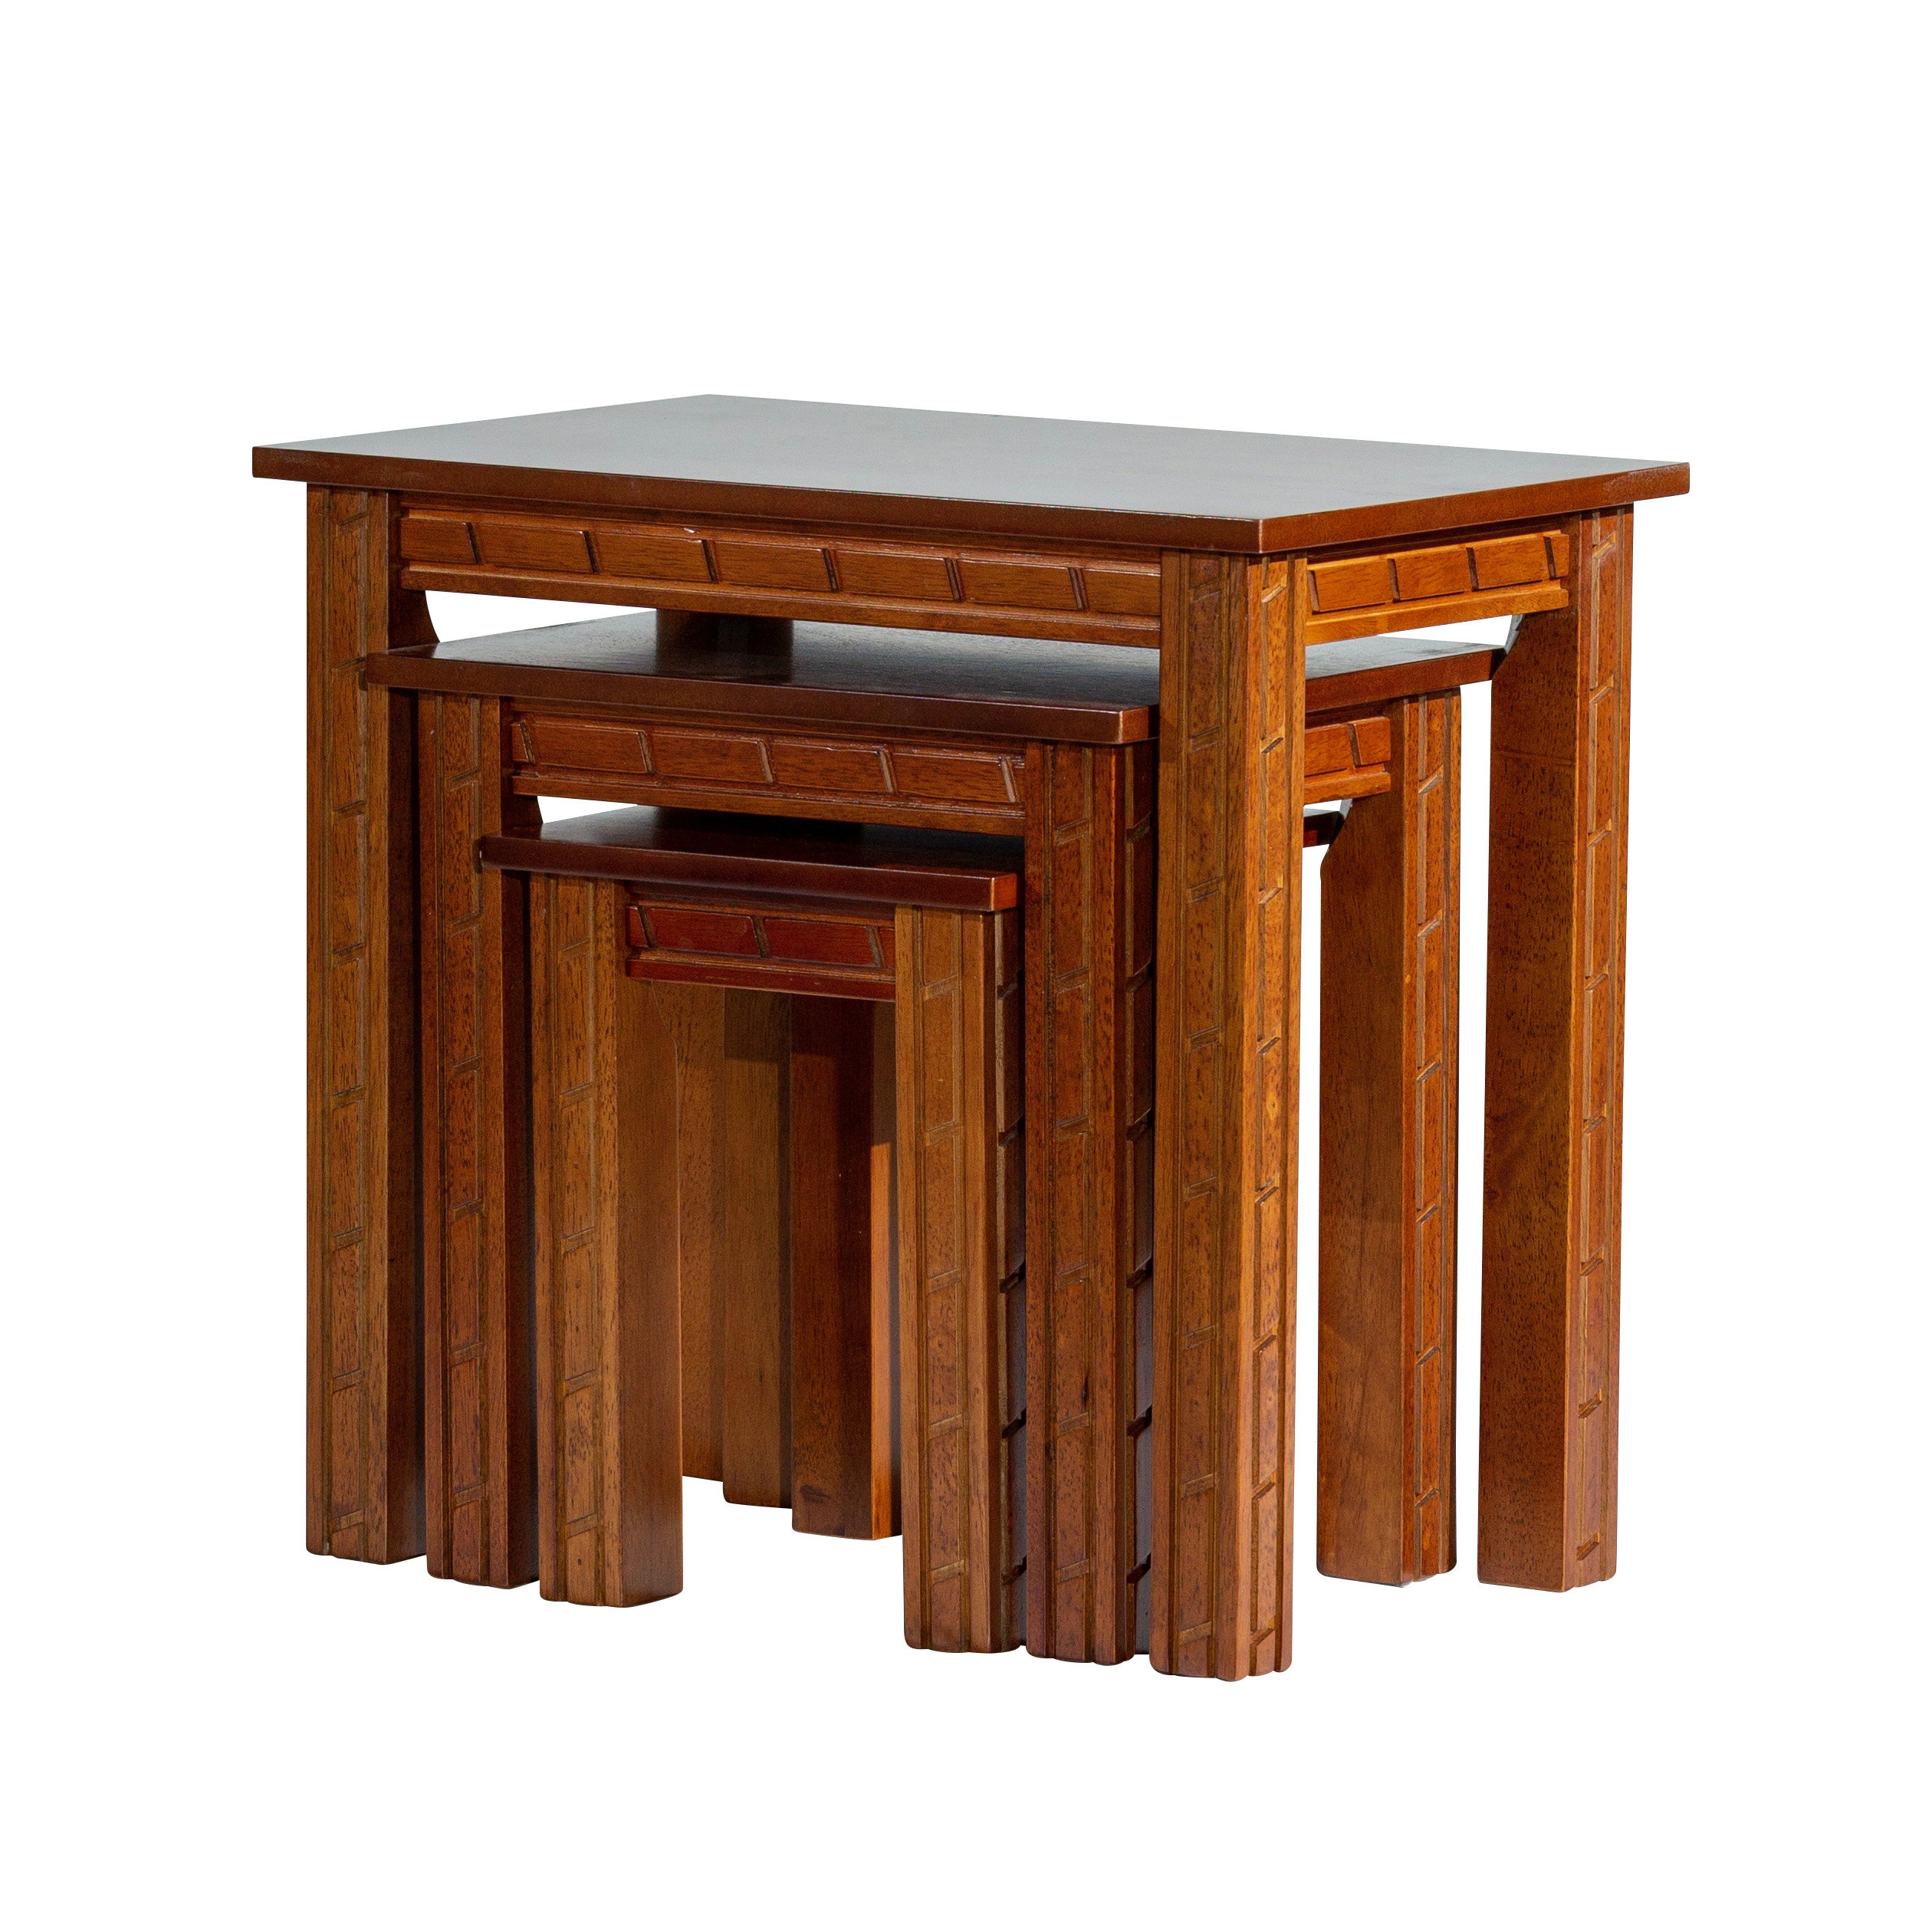 Castellanos Furniture 3 Piece Nesting Tables Pertaining To Latest Castellanos Modern 5 Piece Counter Height Dining Sets (Photo 13 of 20)